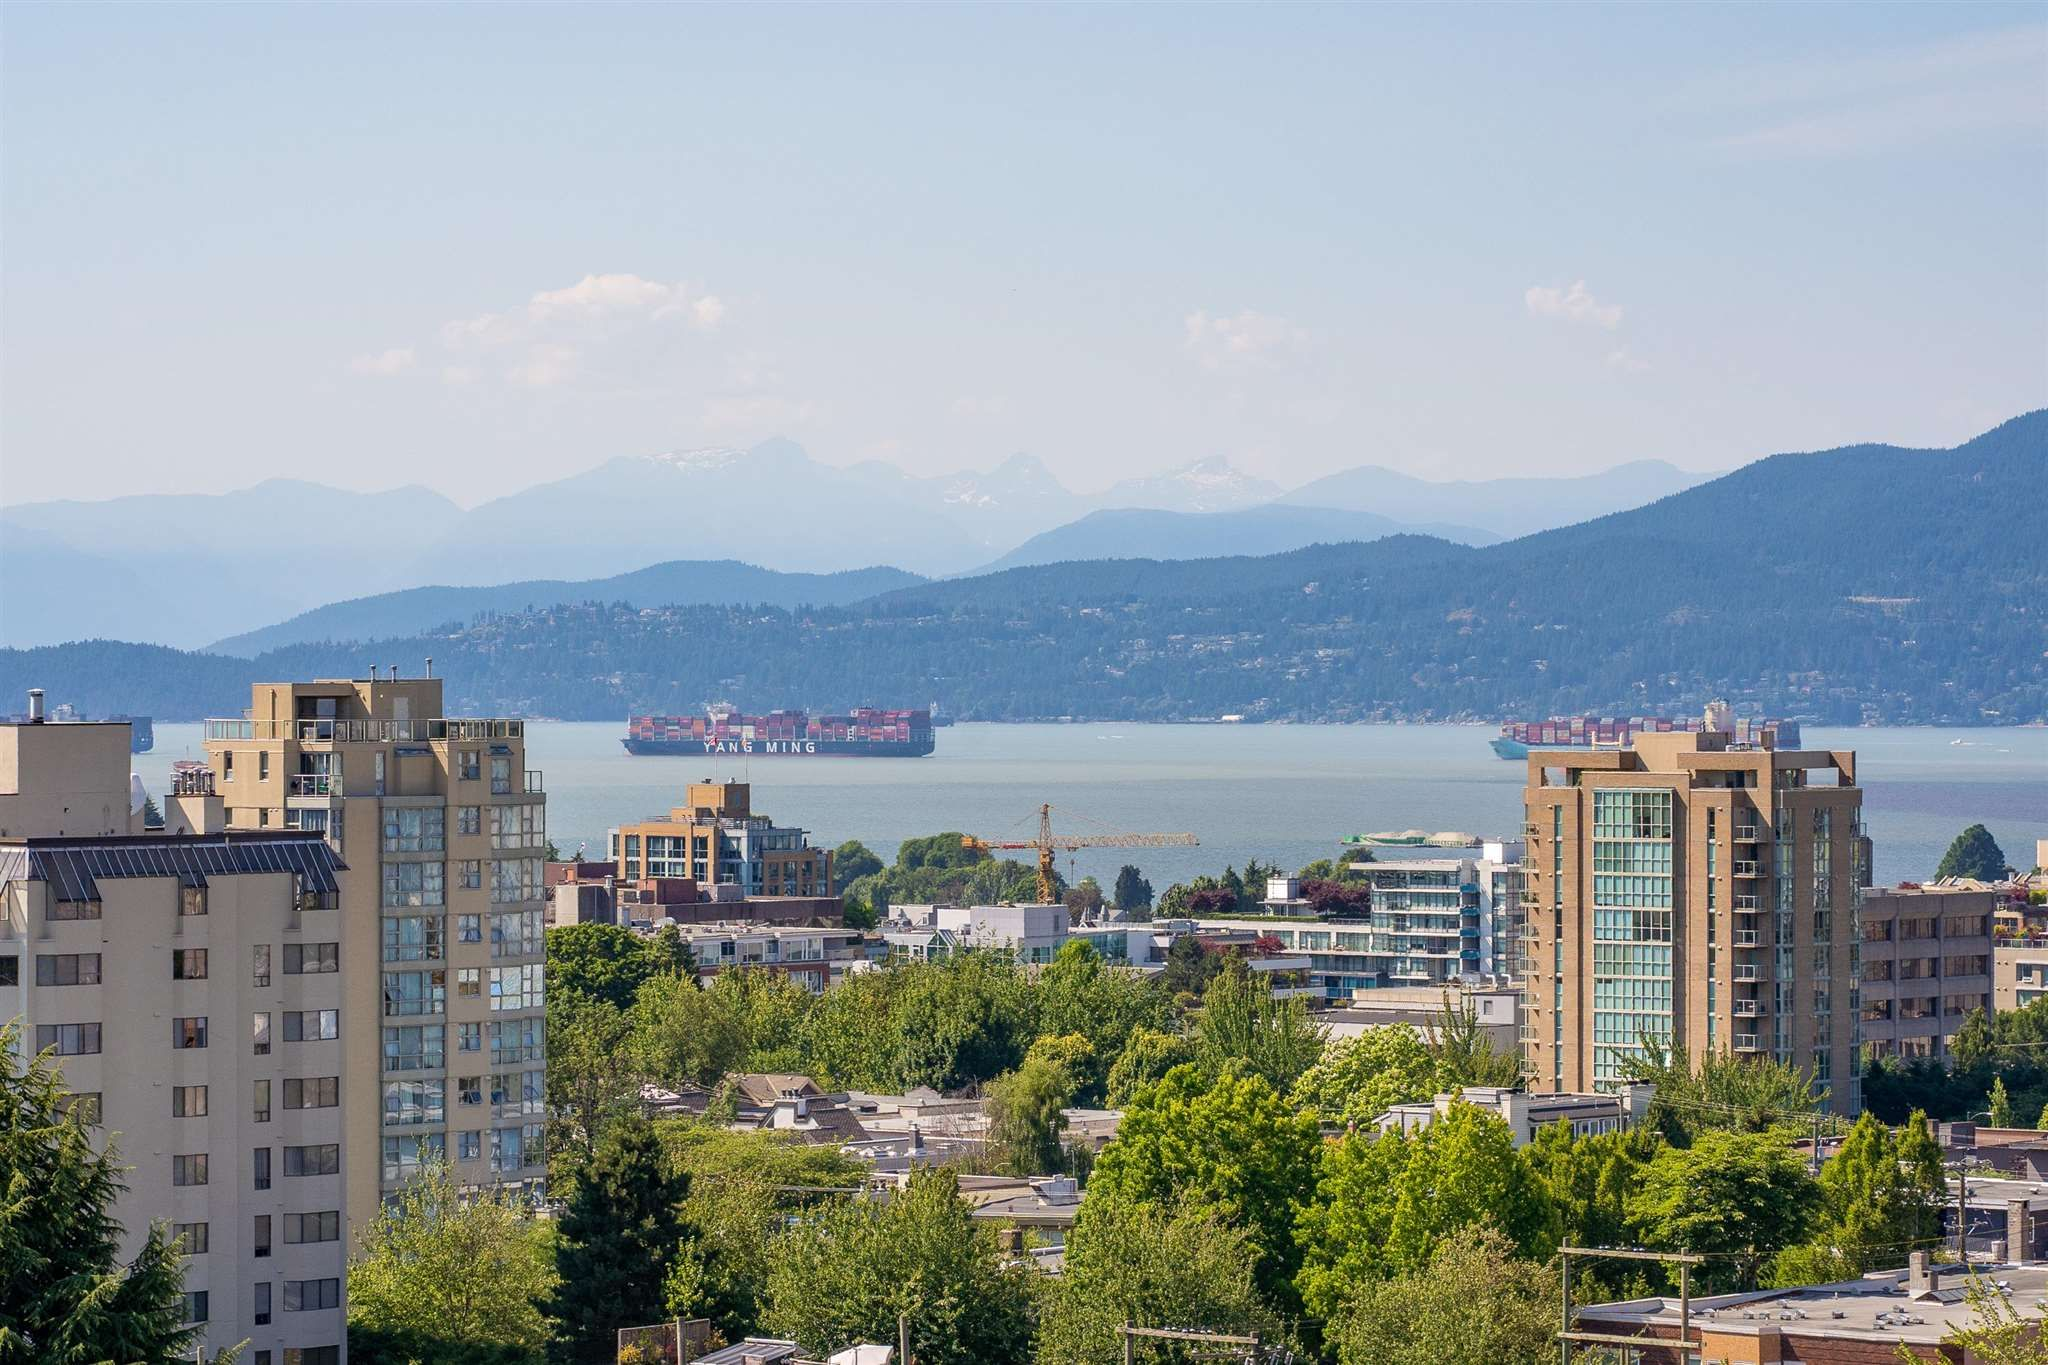 """Main Photo: 1102 1468 W 14TH Avenue in Vancouver: Fairview VW Condo for sale in """"AVEDON"""" (Vancouver West)  : MLS®# R2599703"""